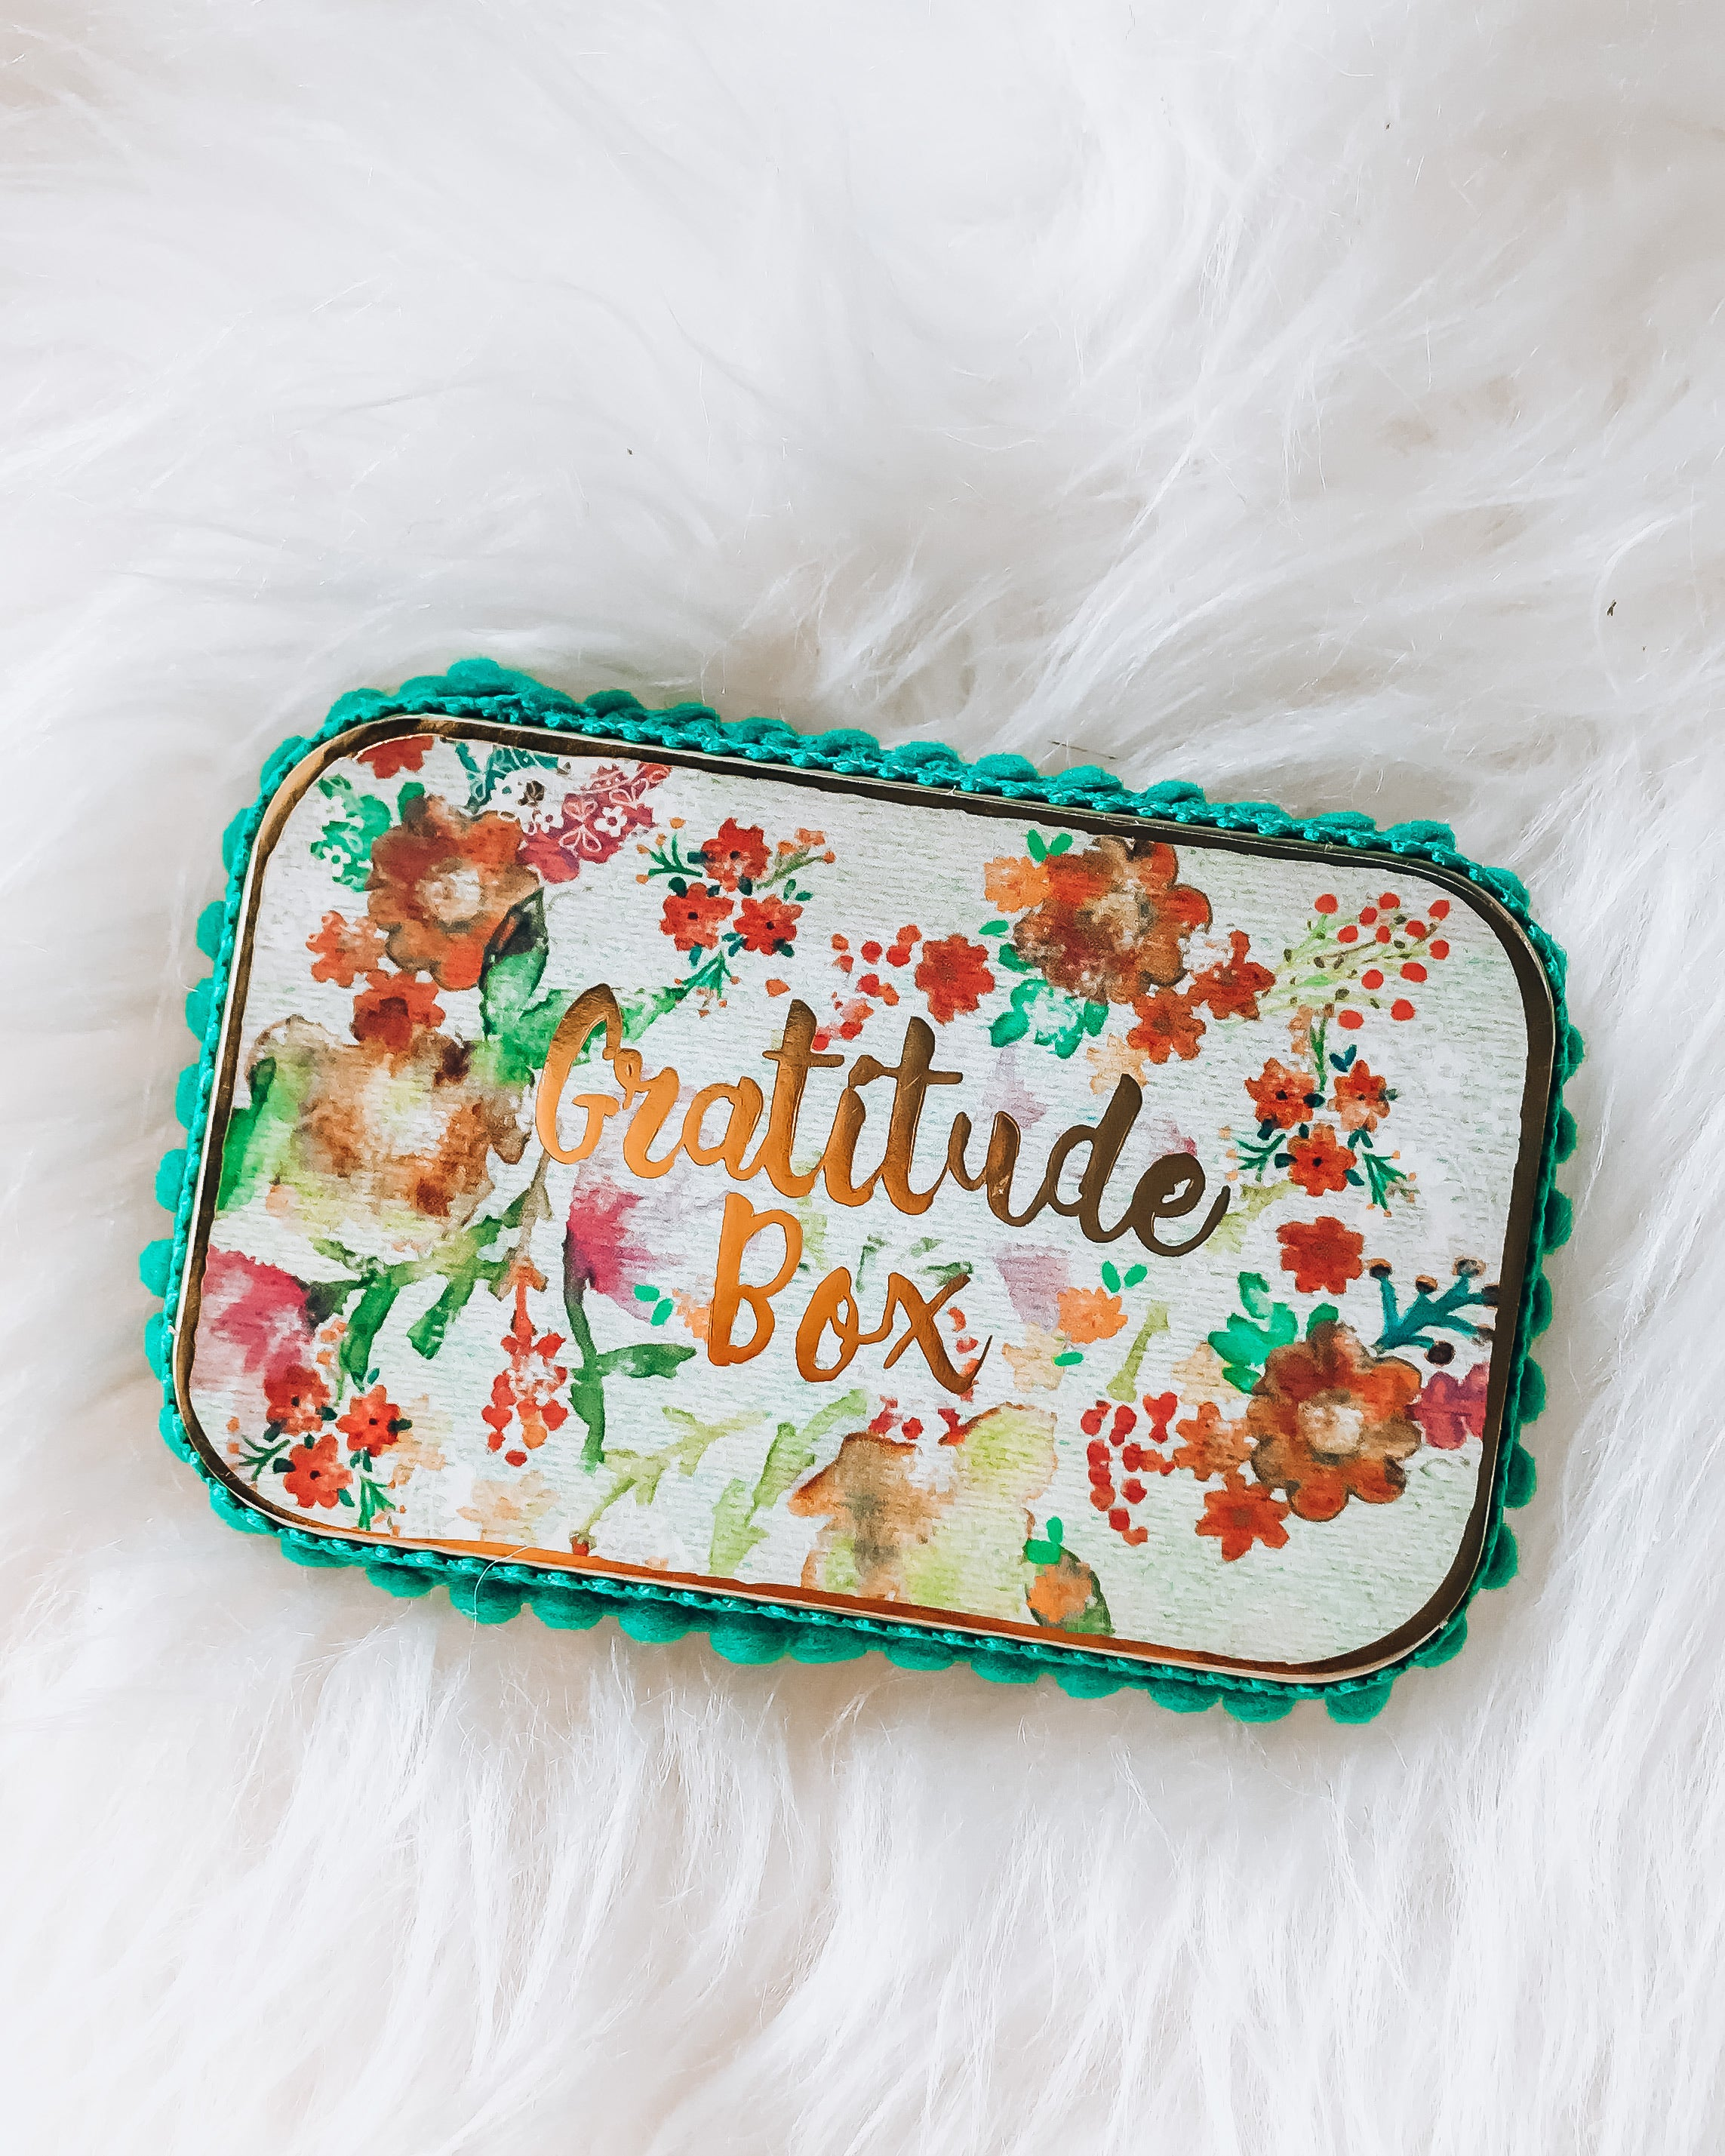 Prayer Box [gratitude]